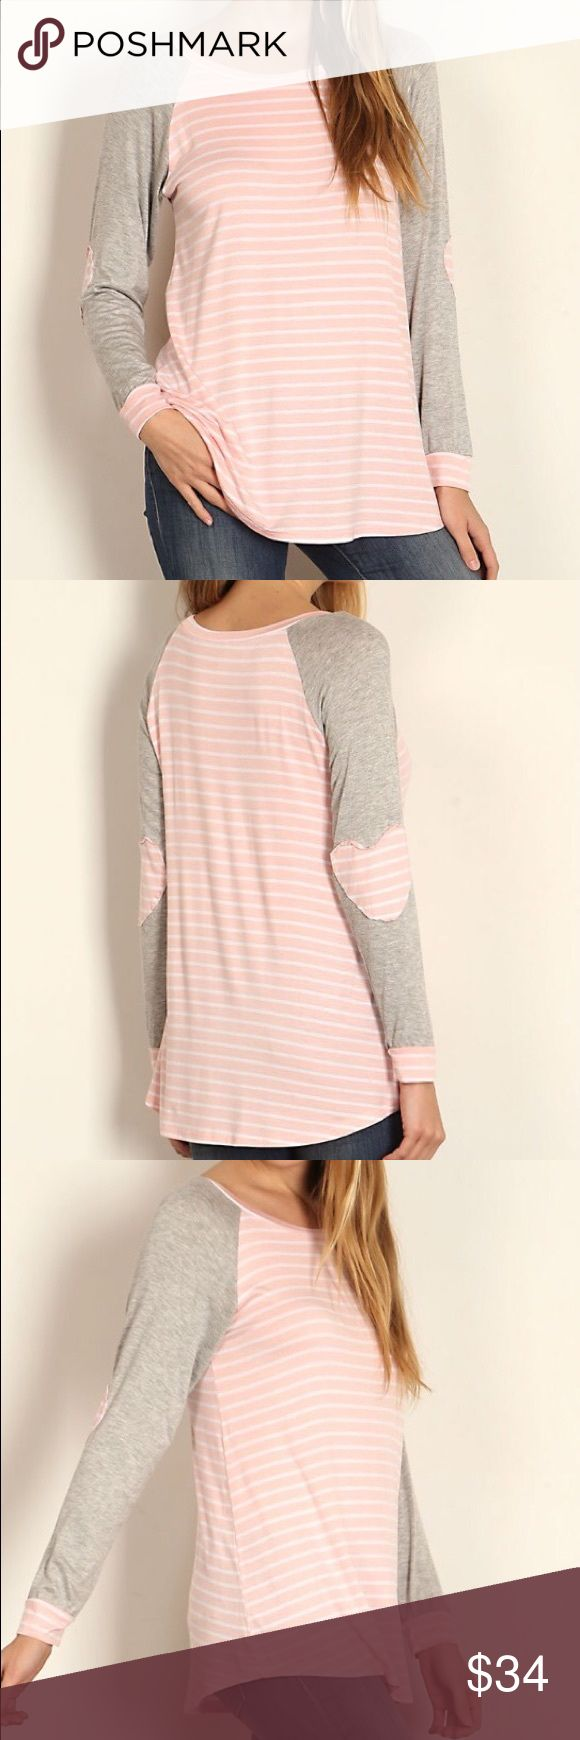 Pink striped elbow patch and grey long sleeve top Pink and grey top Auditions Tops Tees - Long Sleeve